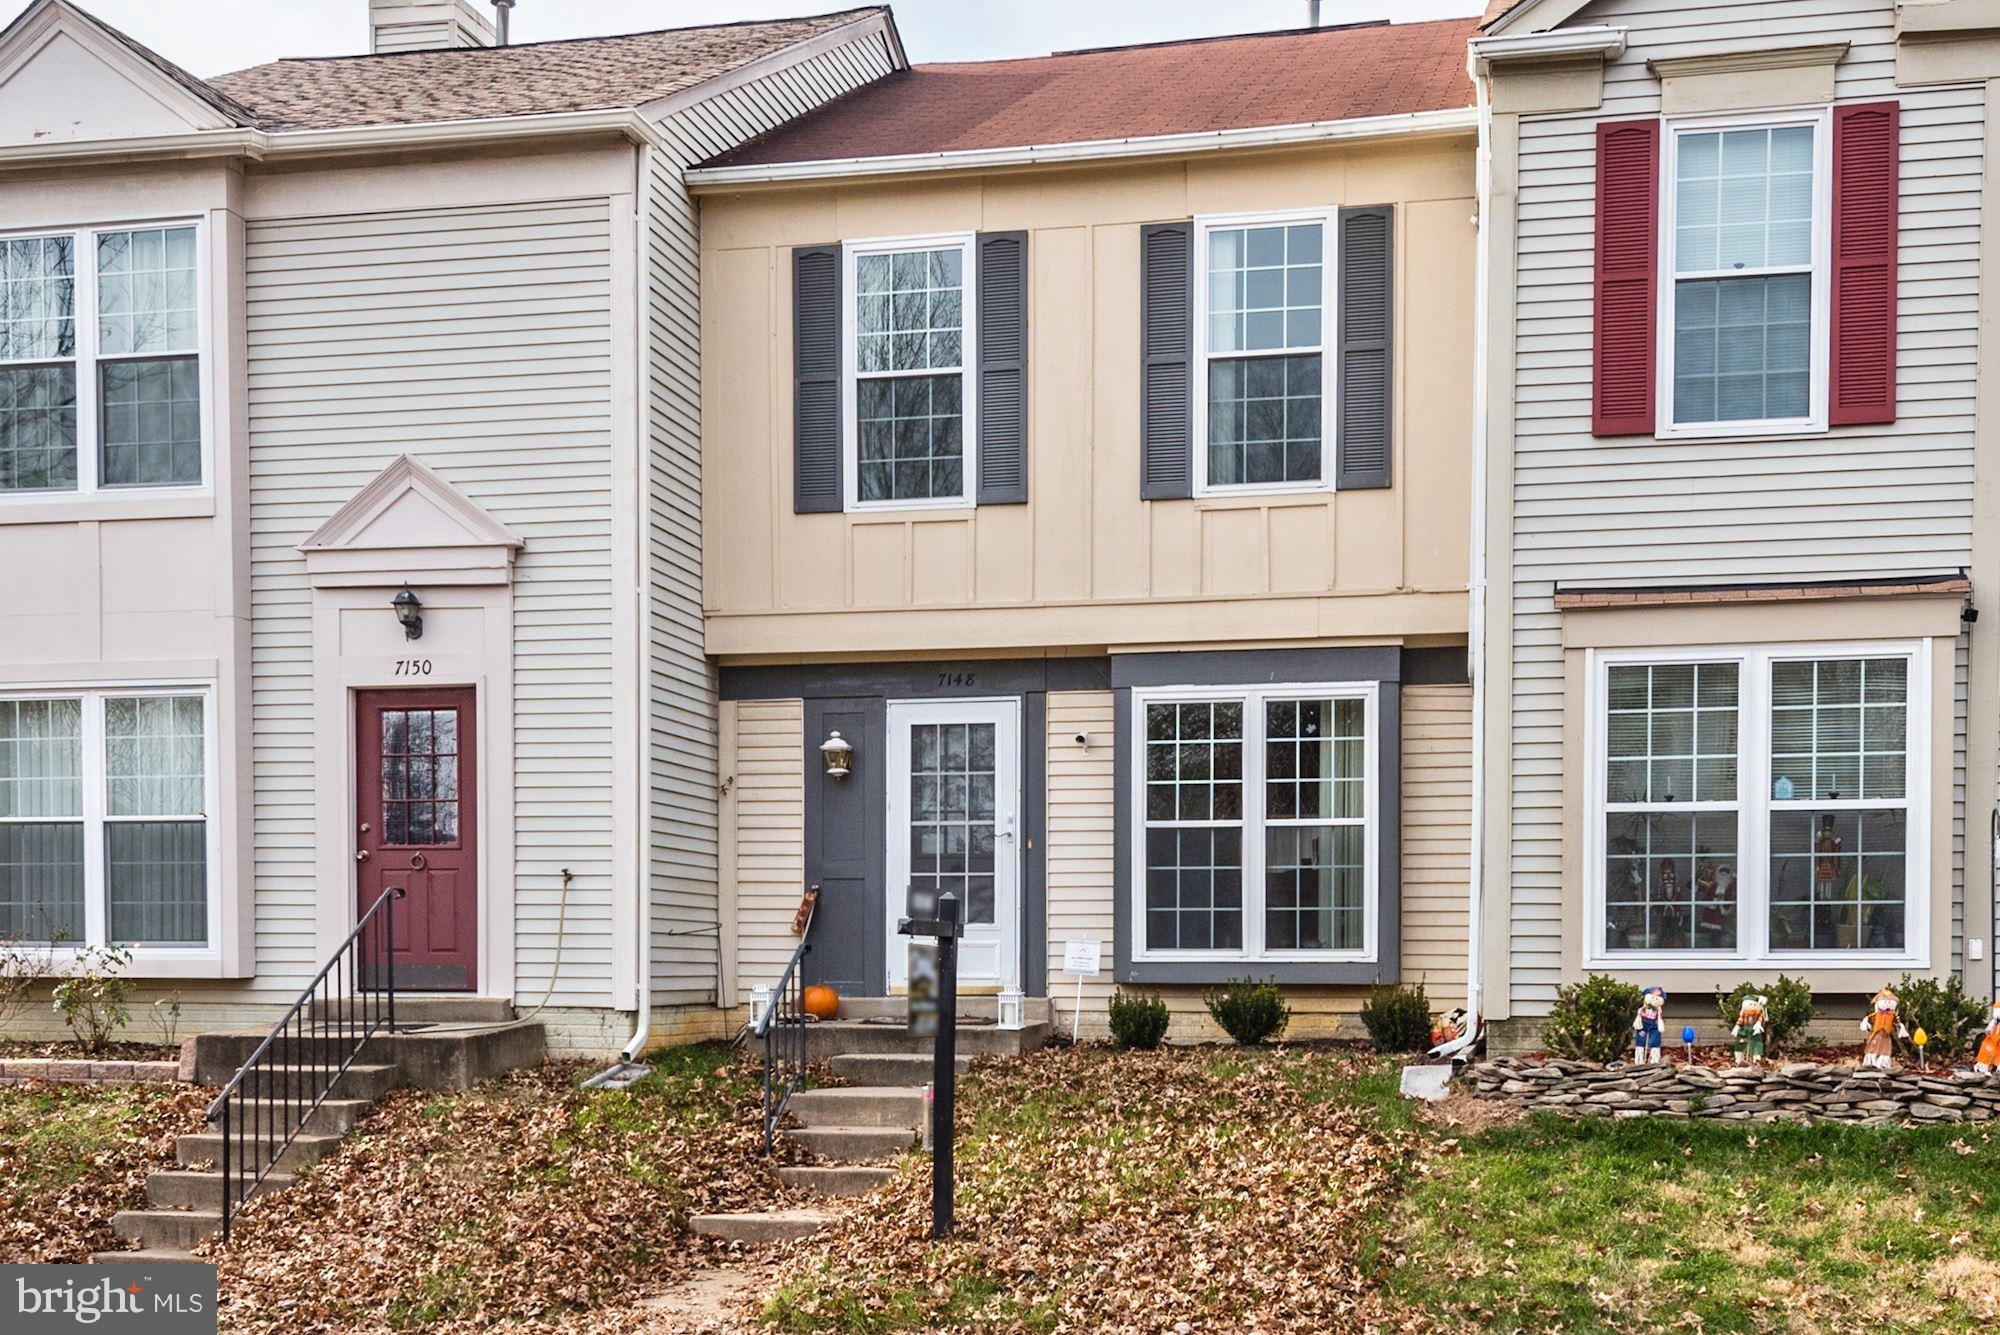 JUST LISTED! Great 2 level townhouse in Alexandria. Short Drive to Multiple Metro Stops and Walking Distance to Huntley Meadows. Priced to Sell. 3 Bedrooms Upstairs with 2 full Baths and Laundry. Lower Level features Eat in Kitchen with Large Breakfast Bar and Space for a Table as well as Large Living Room with Fireplace. Fenced backyard with Deck and Storage Shed. Do not miss this opportunity to own a Fee Simple home in Fairfax County for under $350,000! Alarm System Conveys. New HVAC.